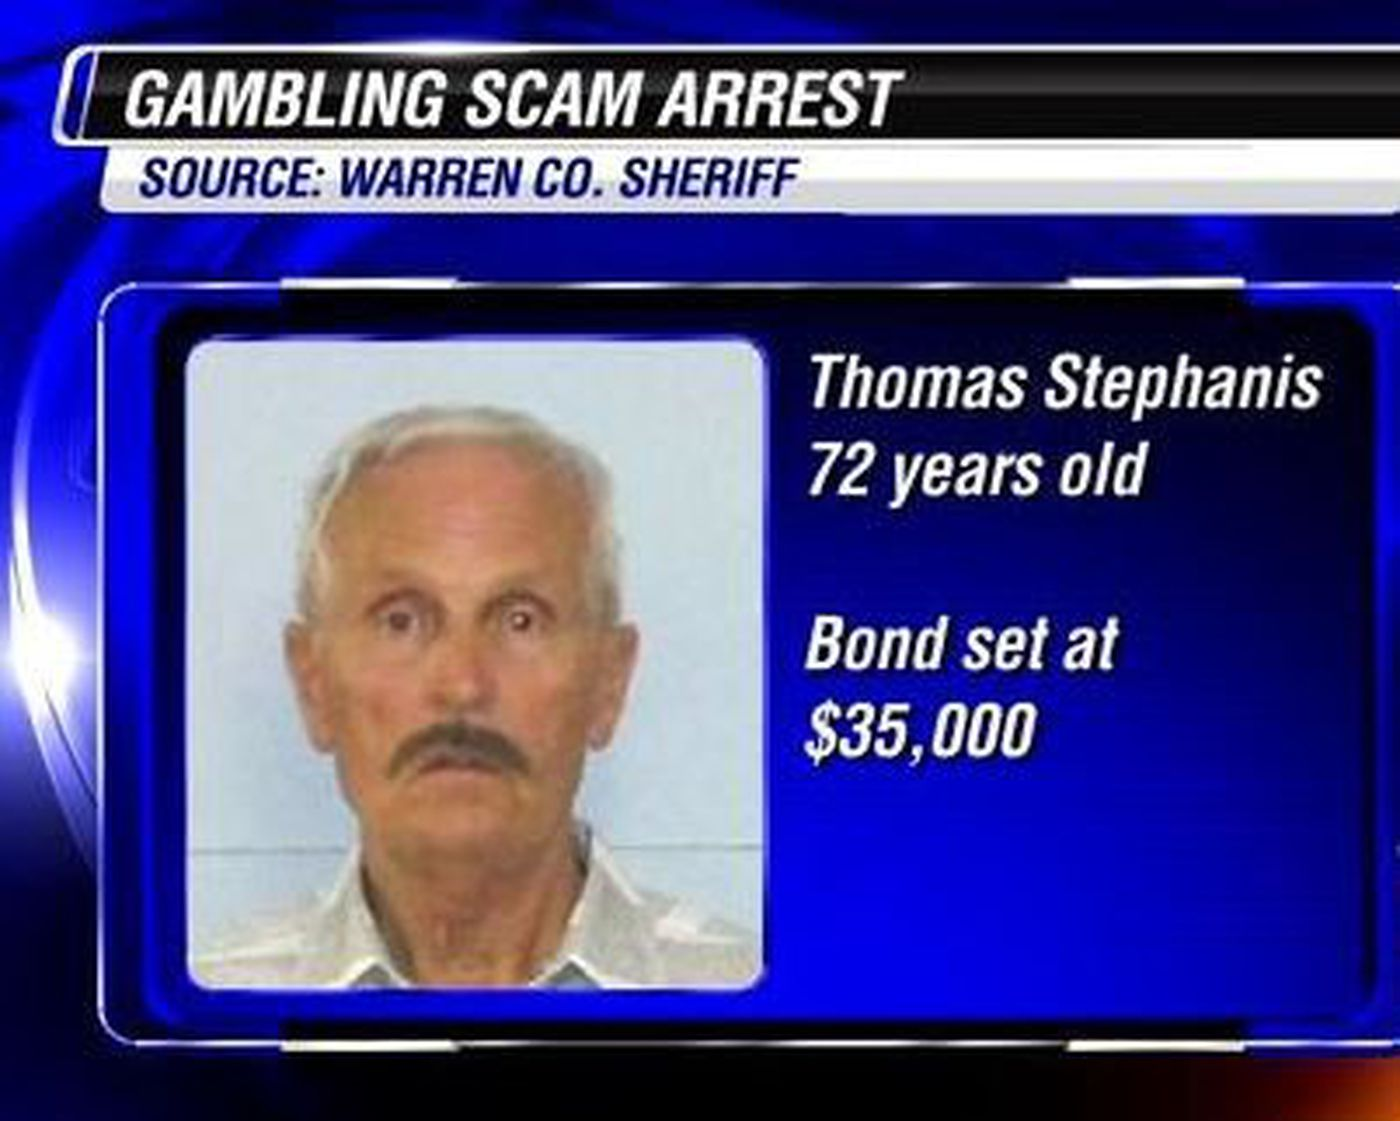 Elderly Texas man arrested for running alleged gambling scam